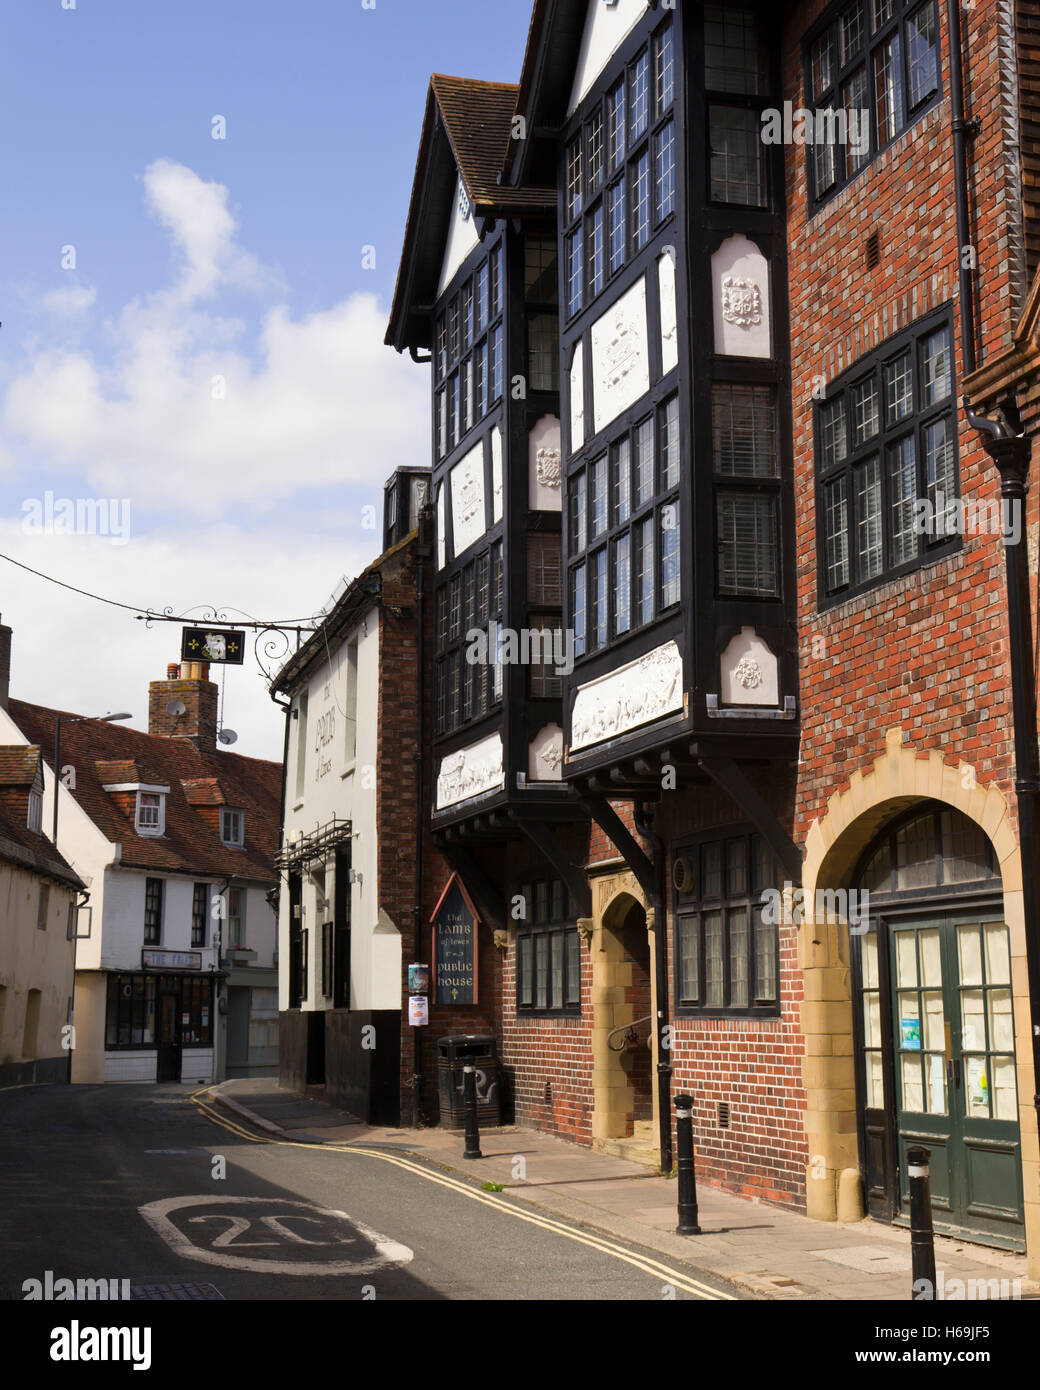 Fisher Street in Lewes with The Lamb of Lewes pub and the Council offices on the rights . - Stock Image